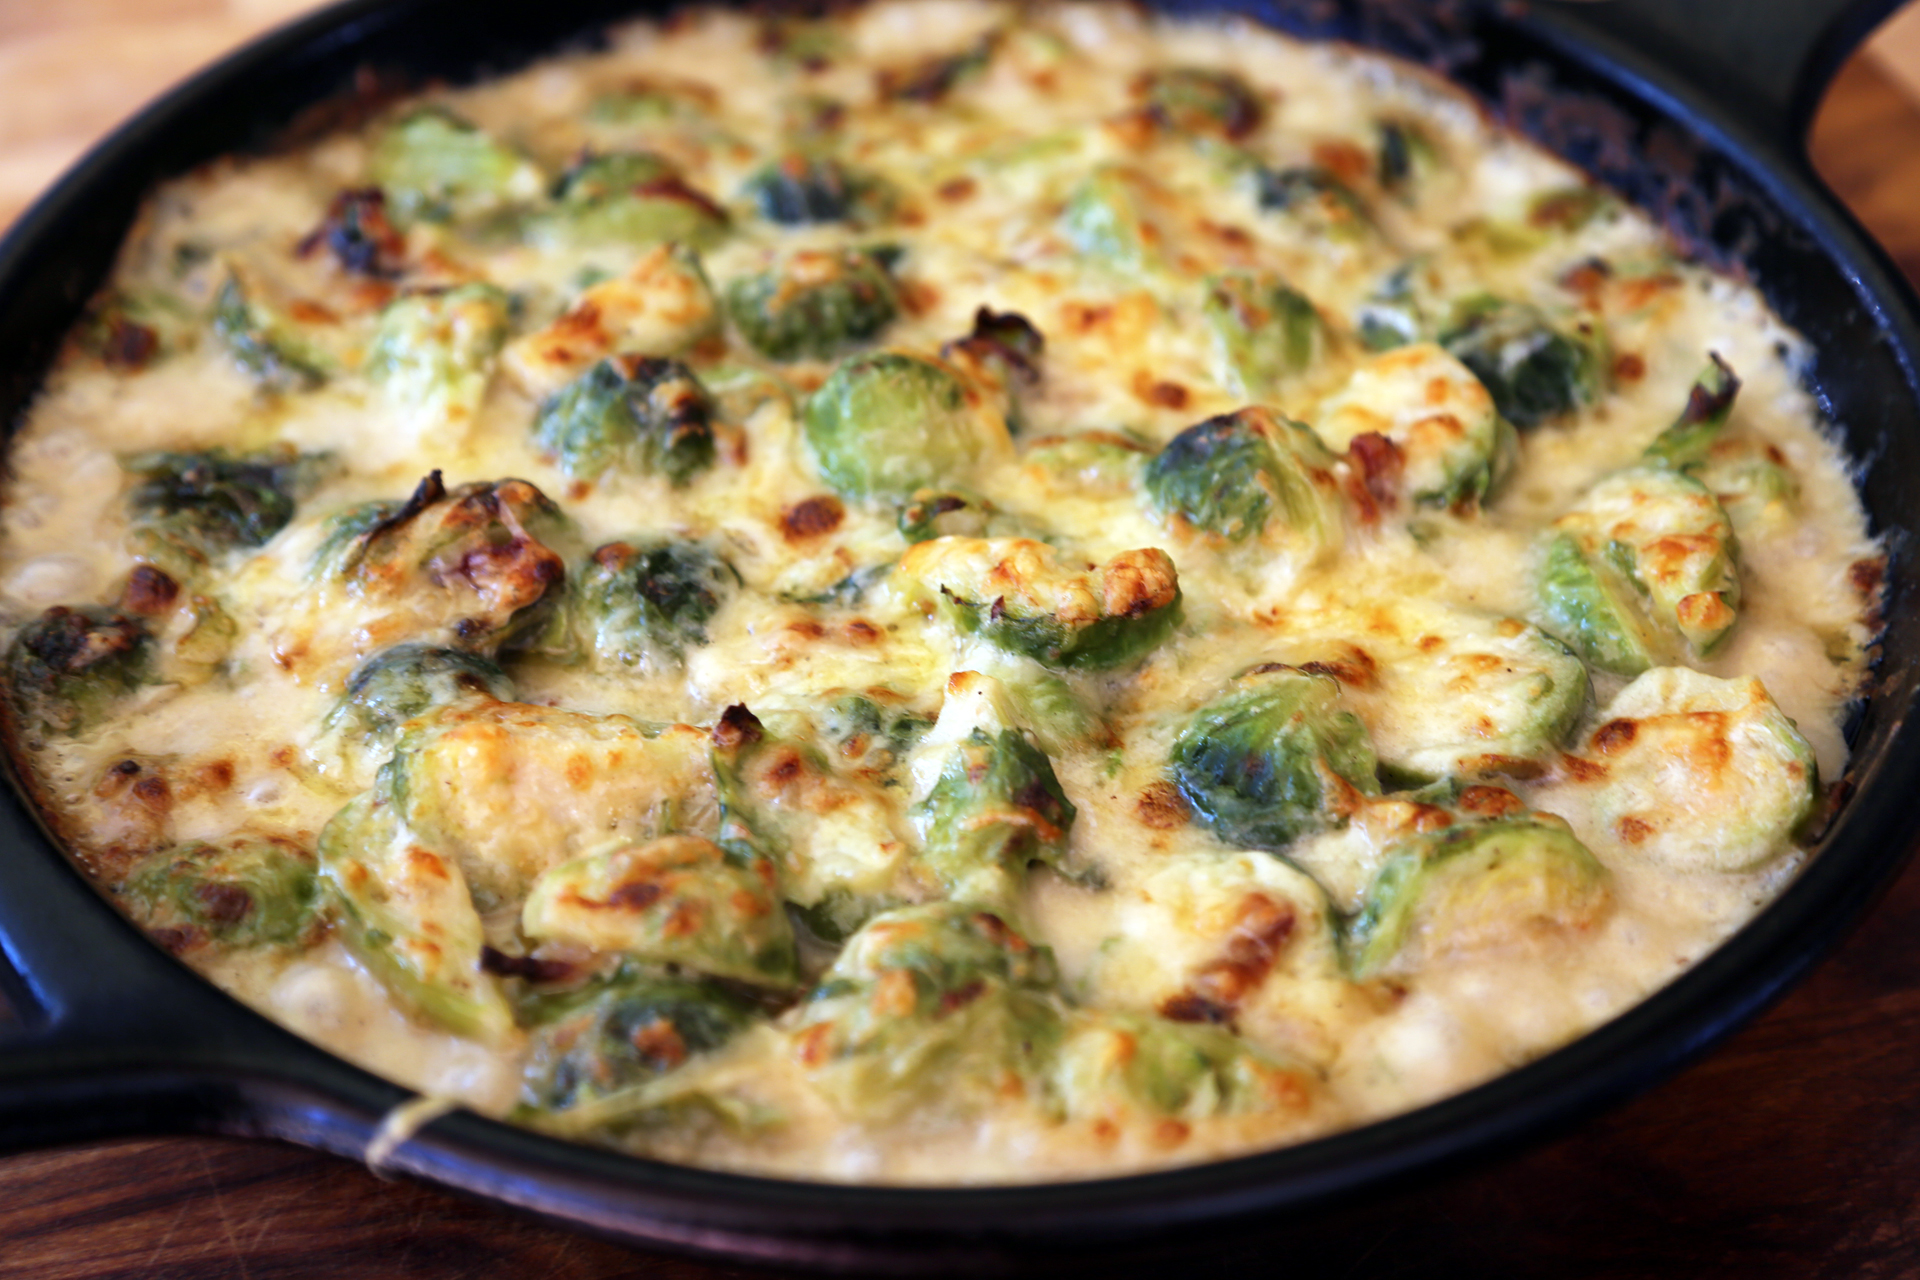 gratin with bacon and gruyere wendy goodfriend brussels sprouts gratin ...